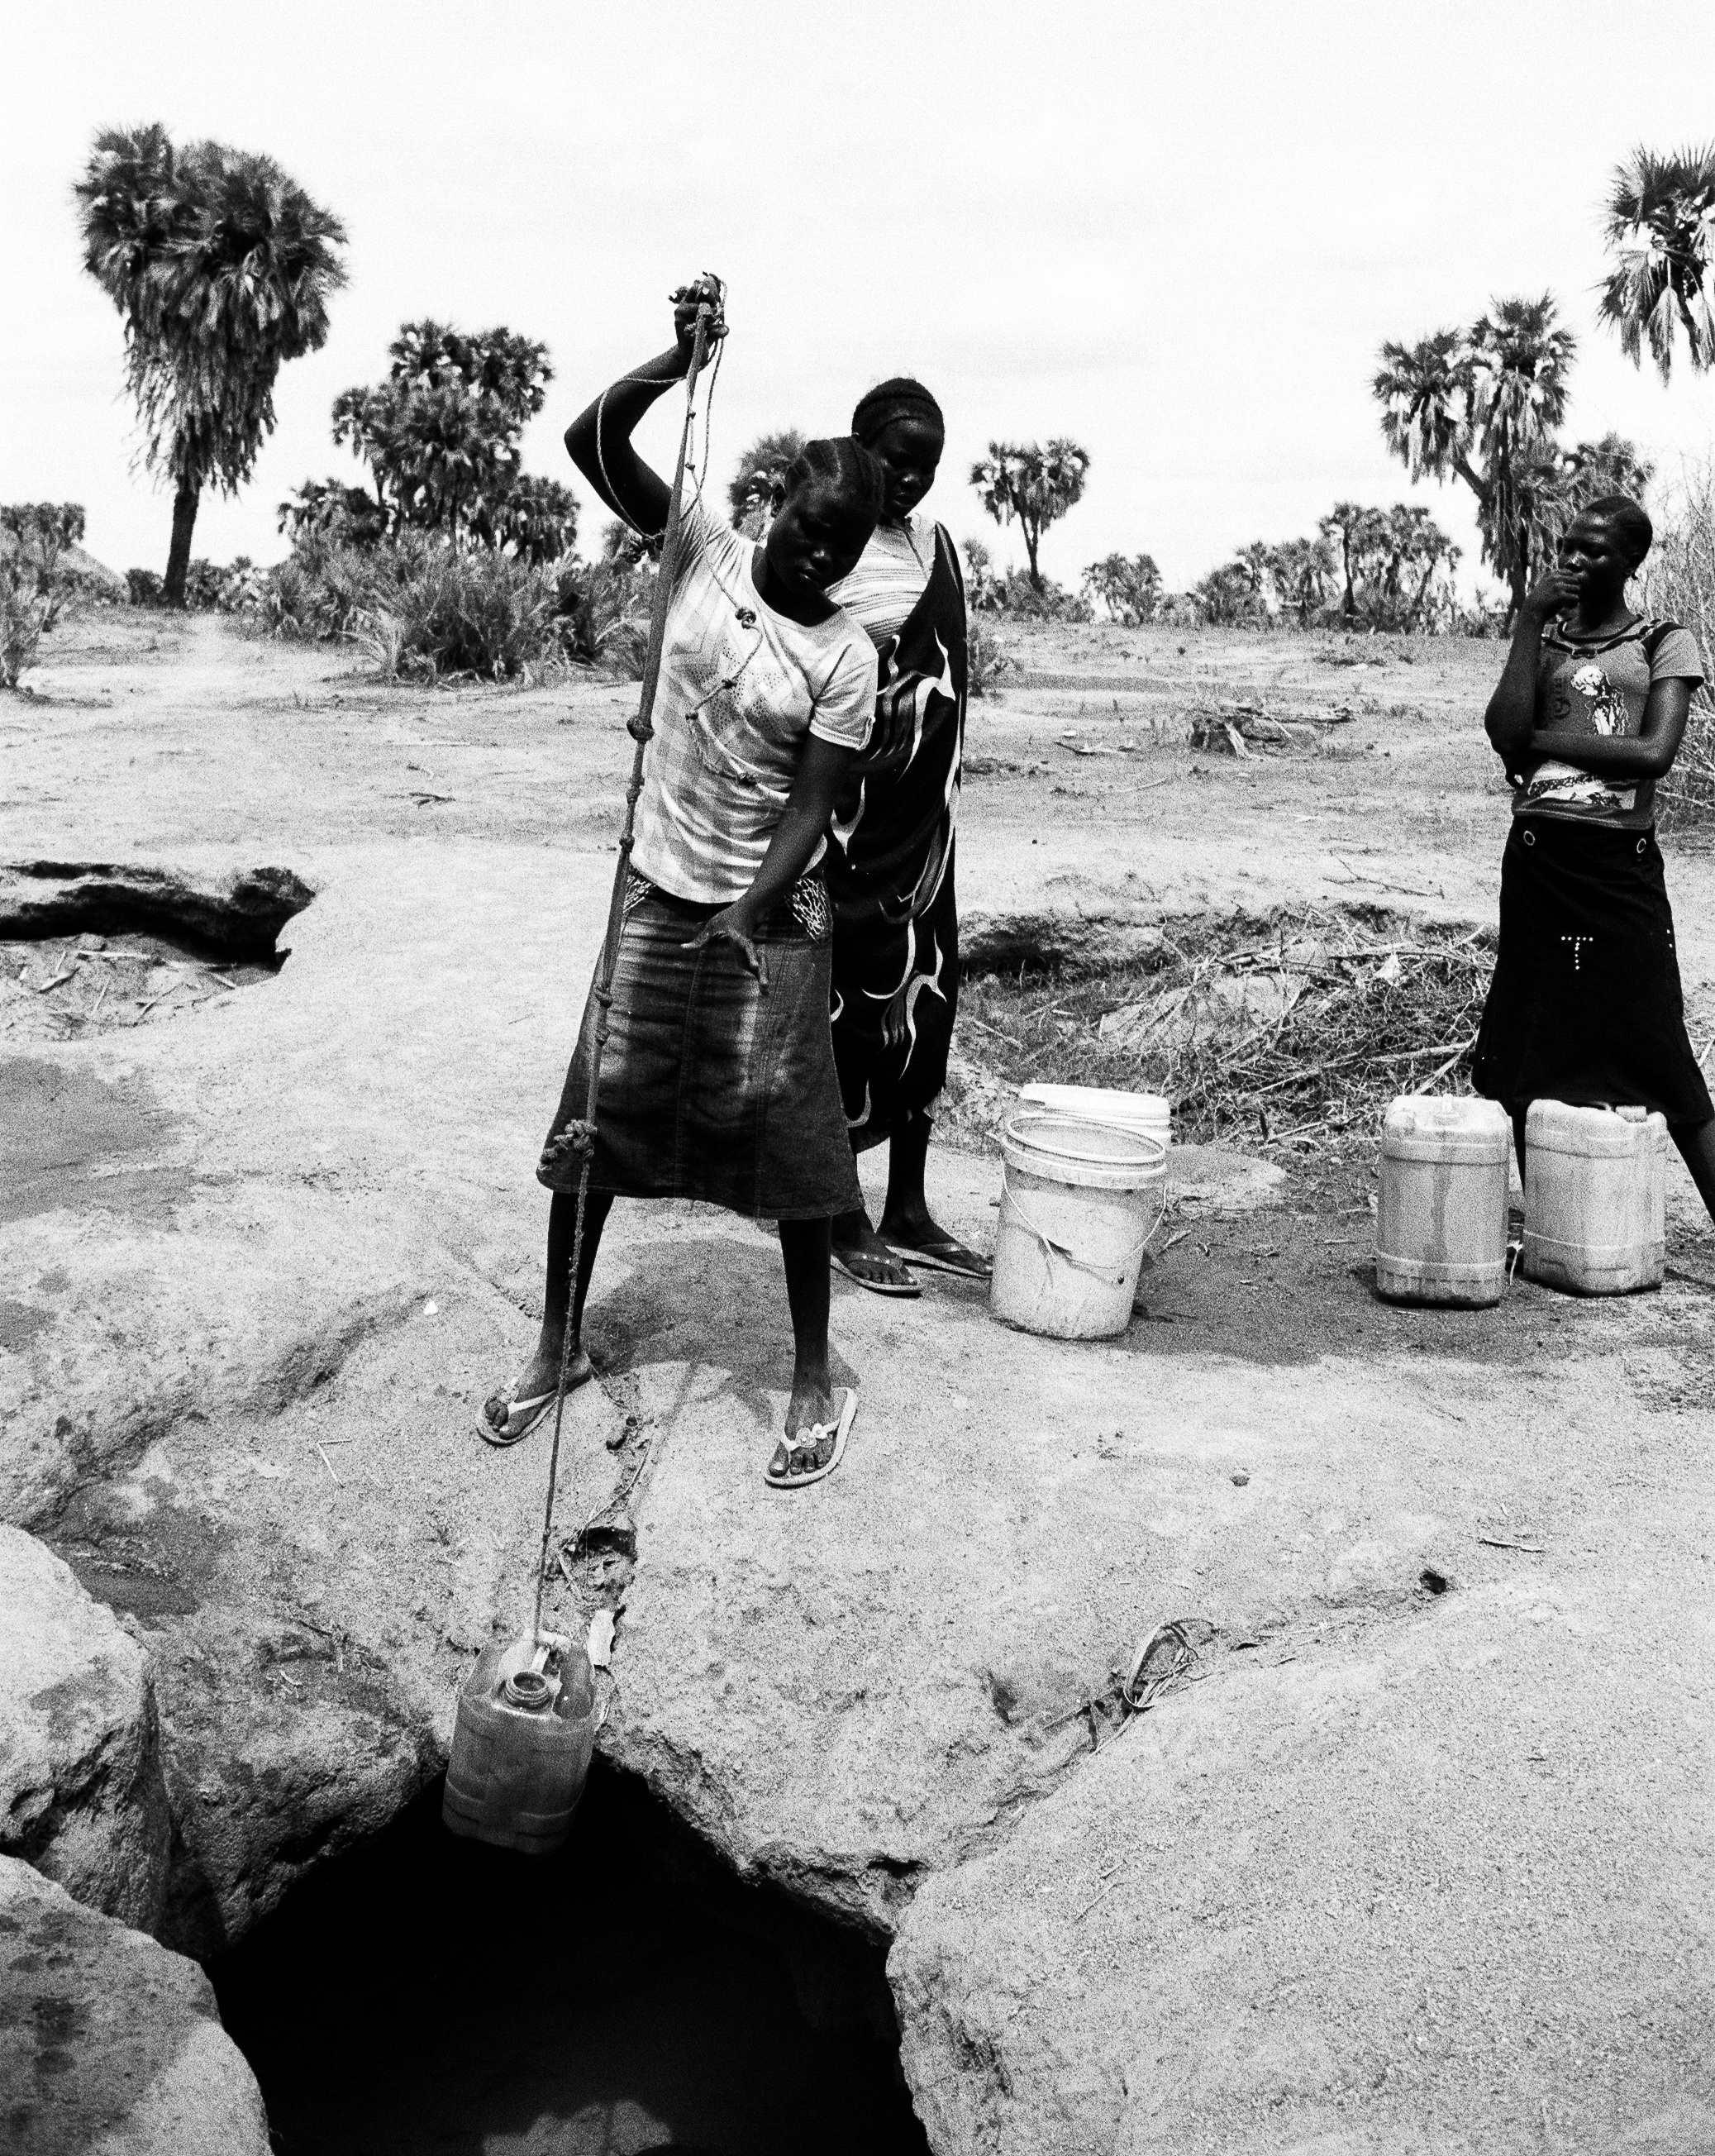 Without access to safe water